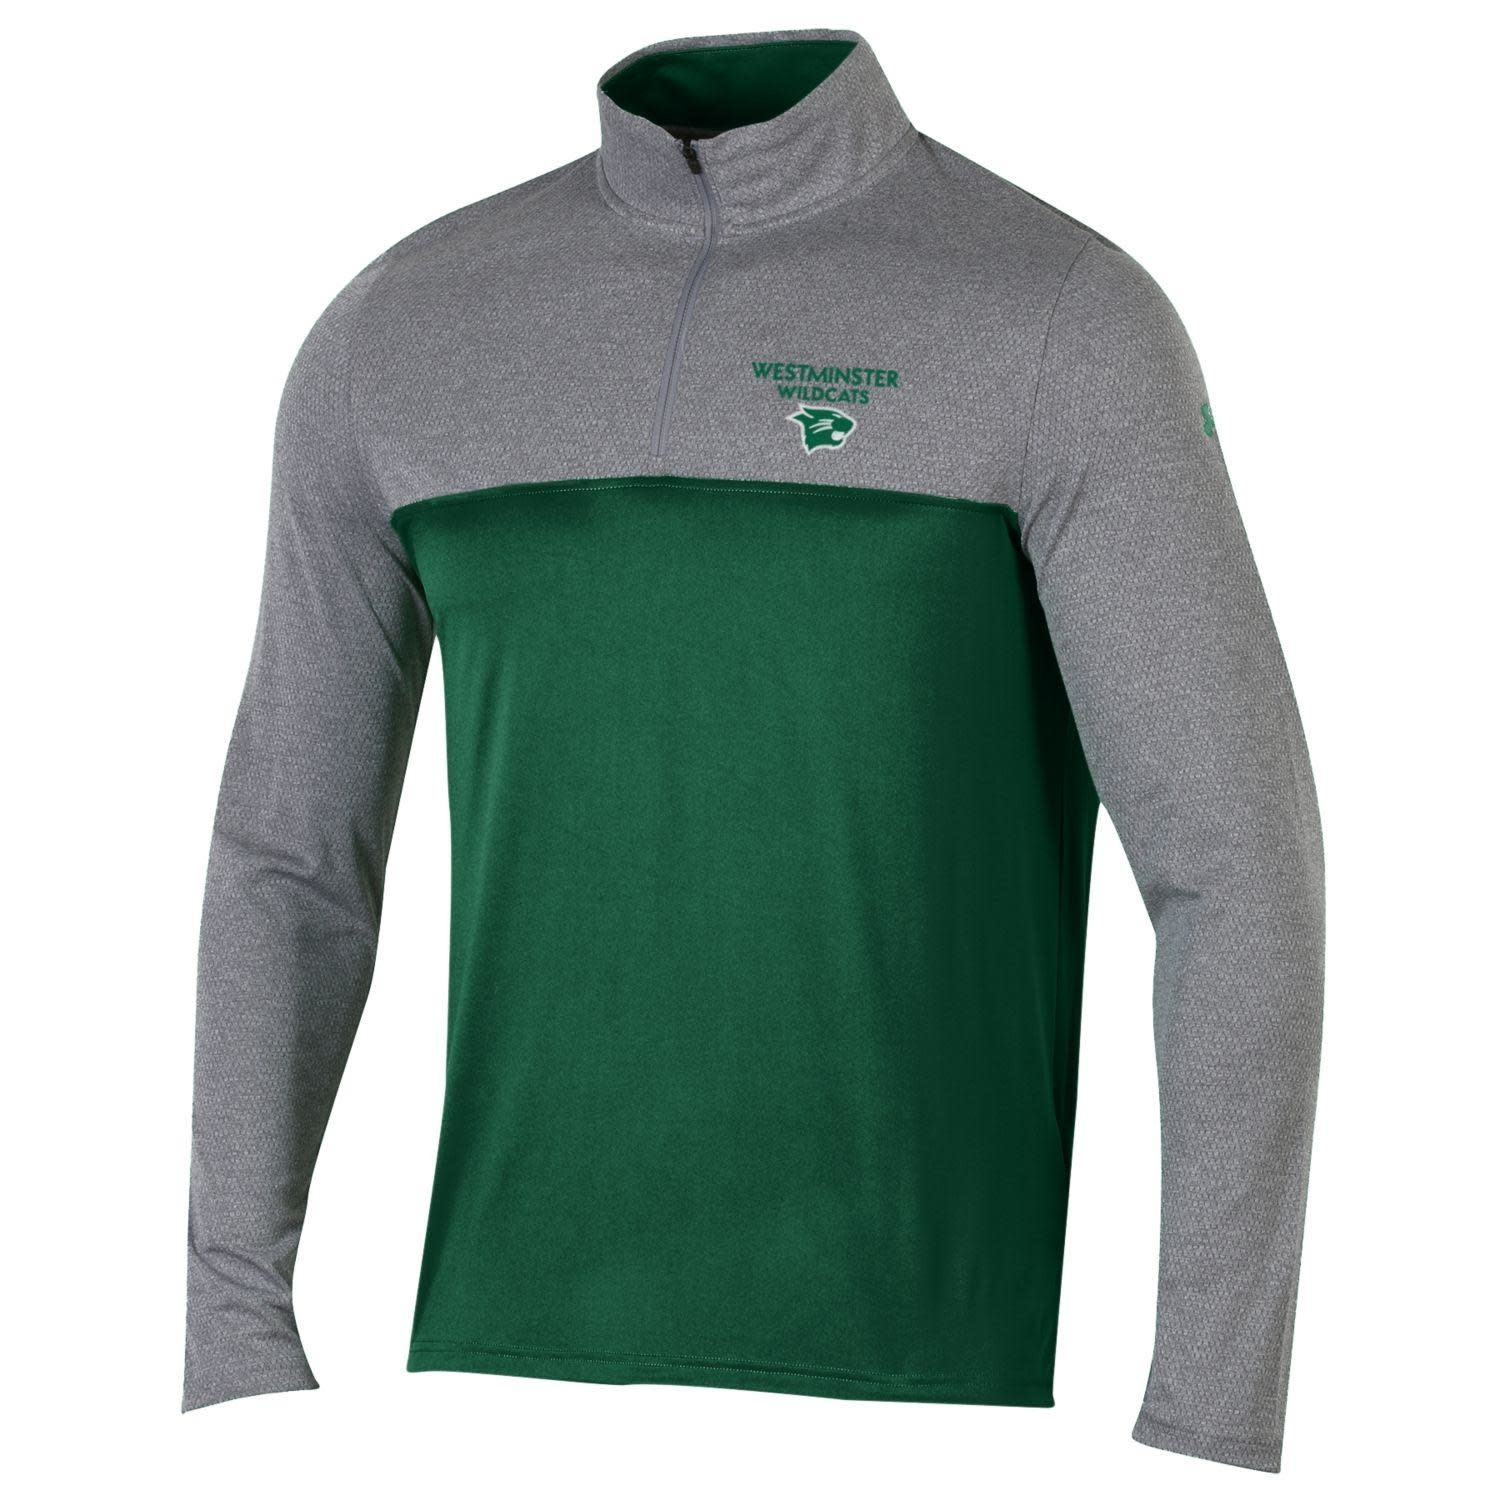 Pullover: Men's 1/4 Zip Color Block West Wildcats w/logo - Green/Gray